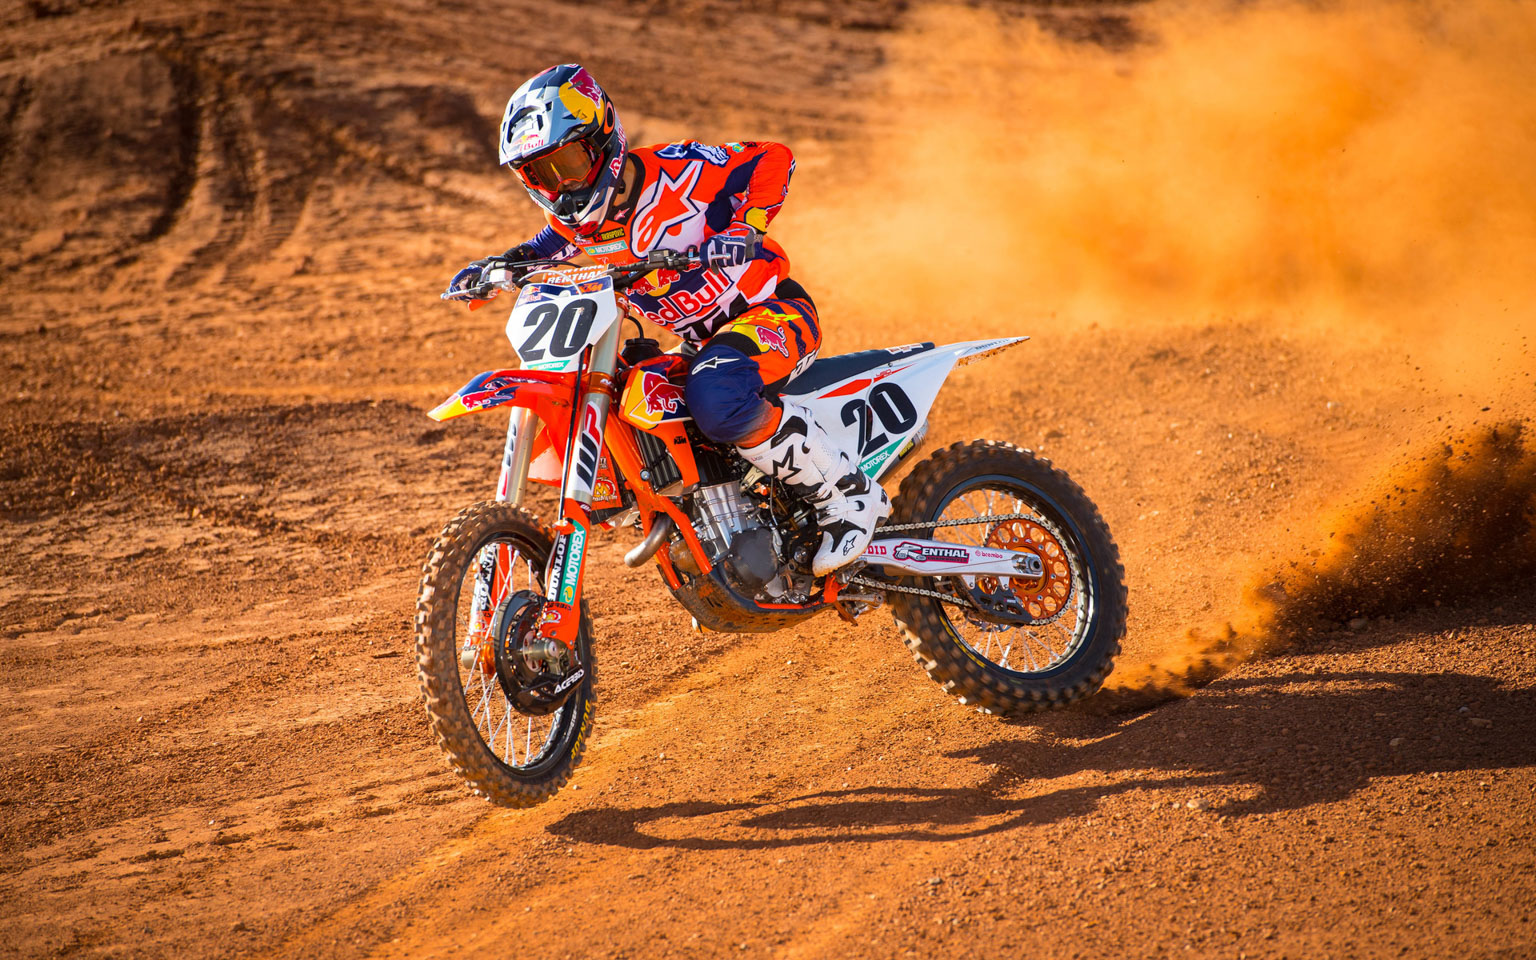 Ktm Duo Are Ready For Action Motohead